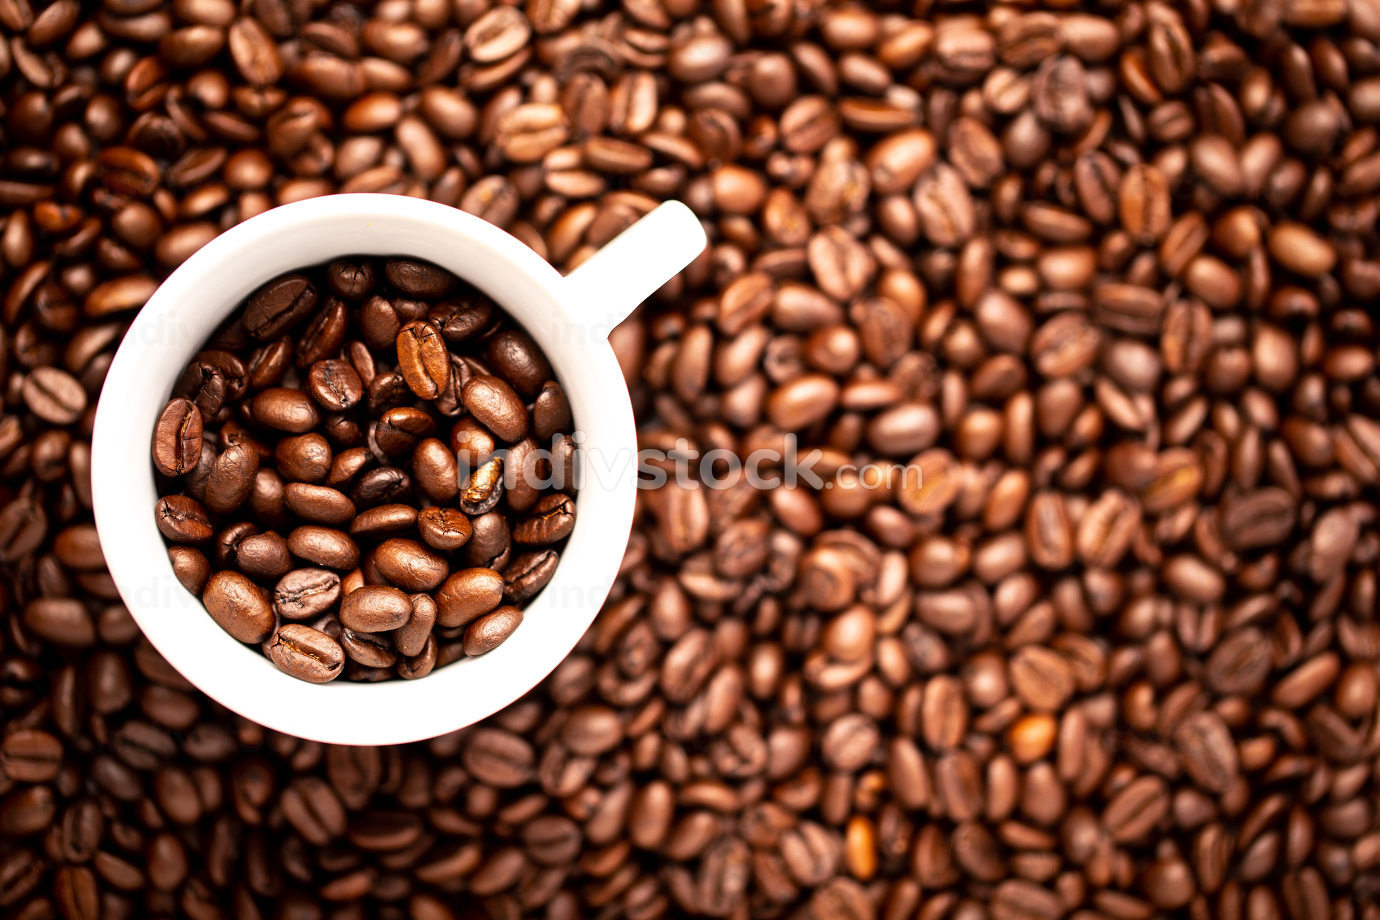 White cup with coffee beans on a background of coffee beans